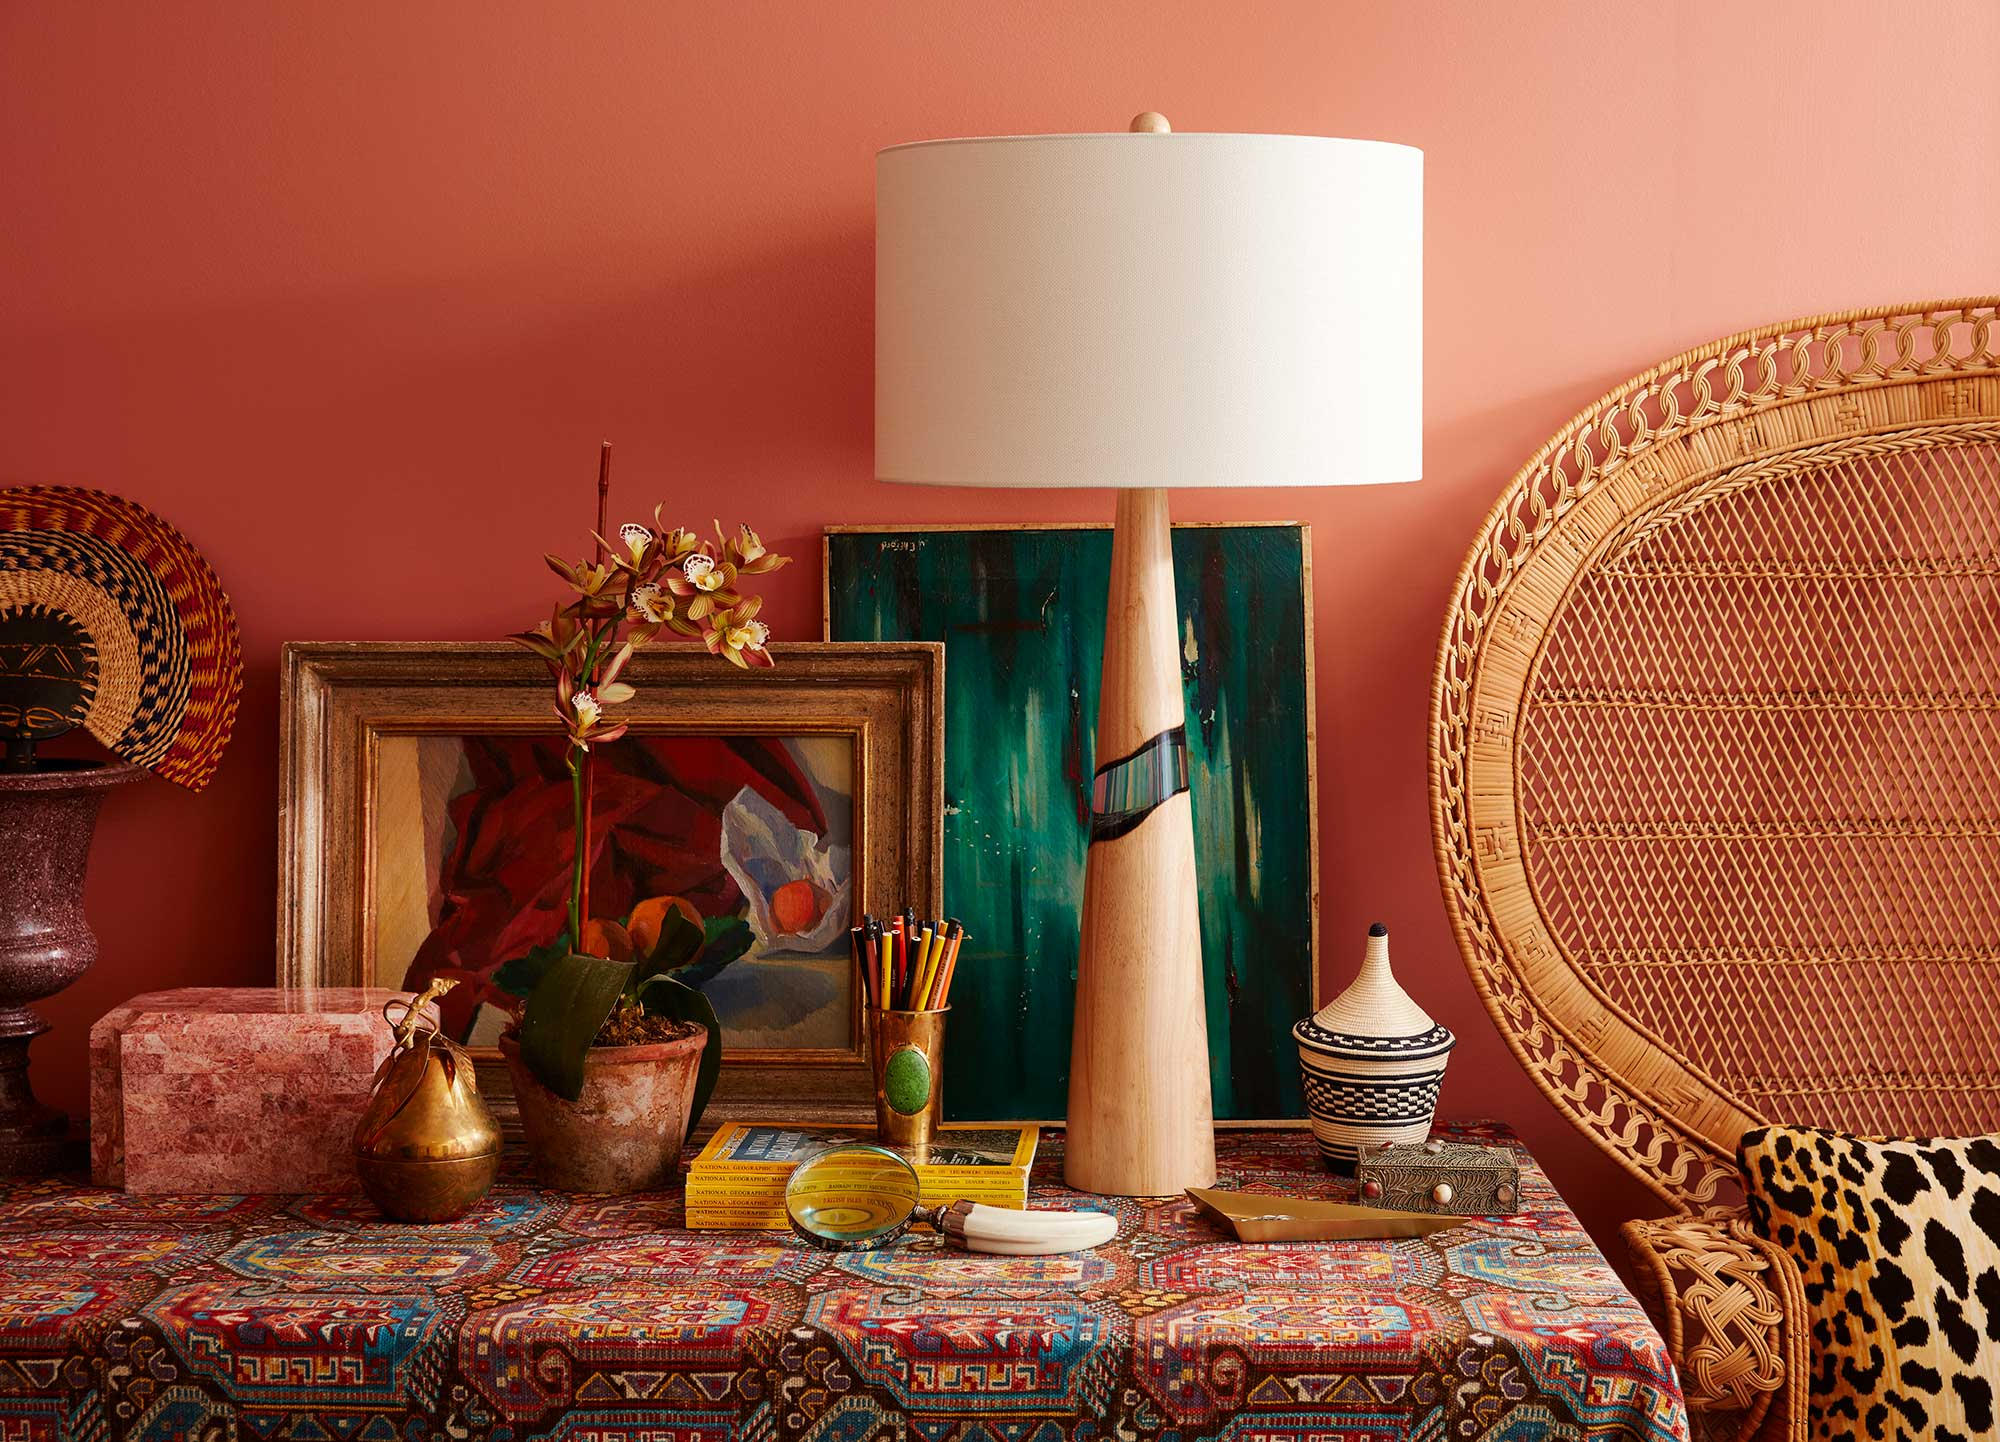 Catalog image featuring lamps